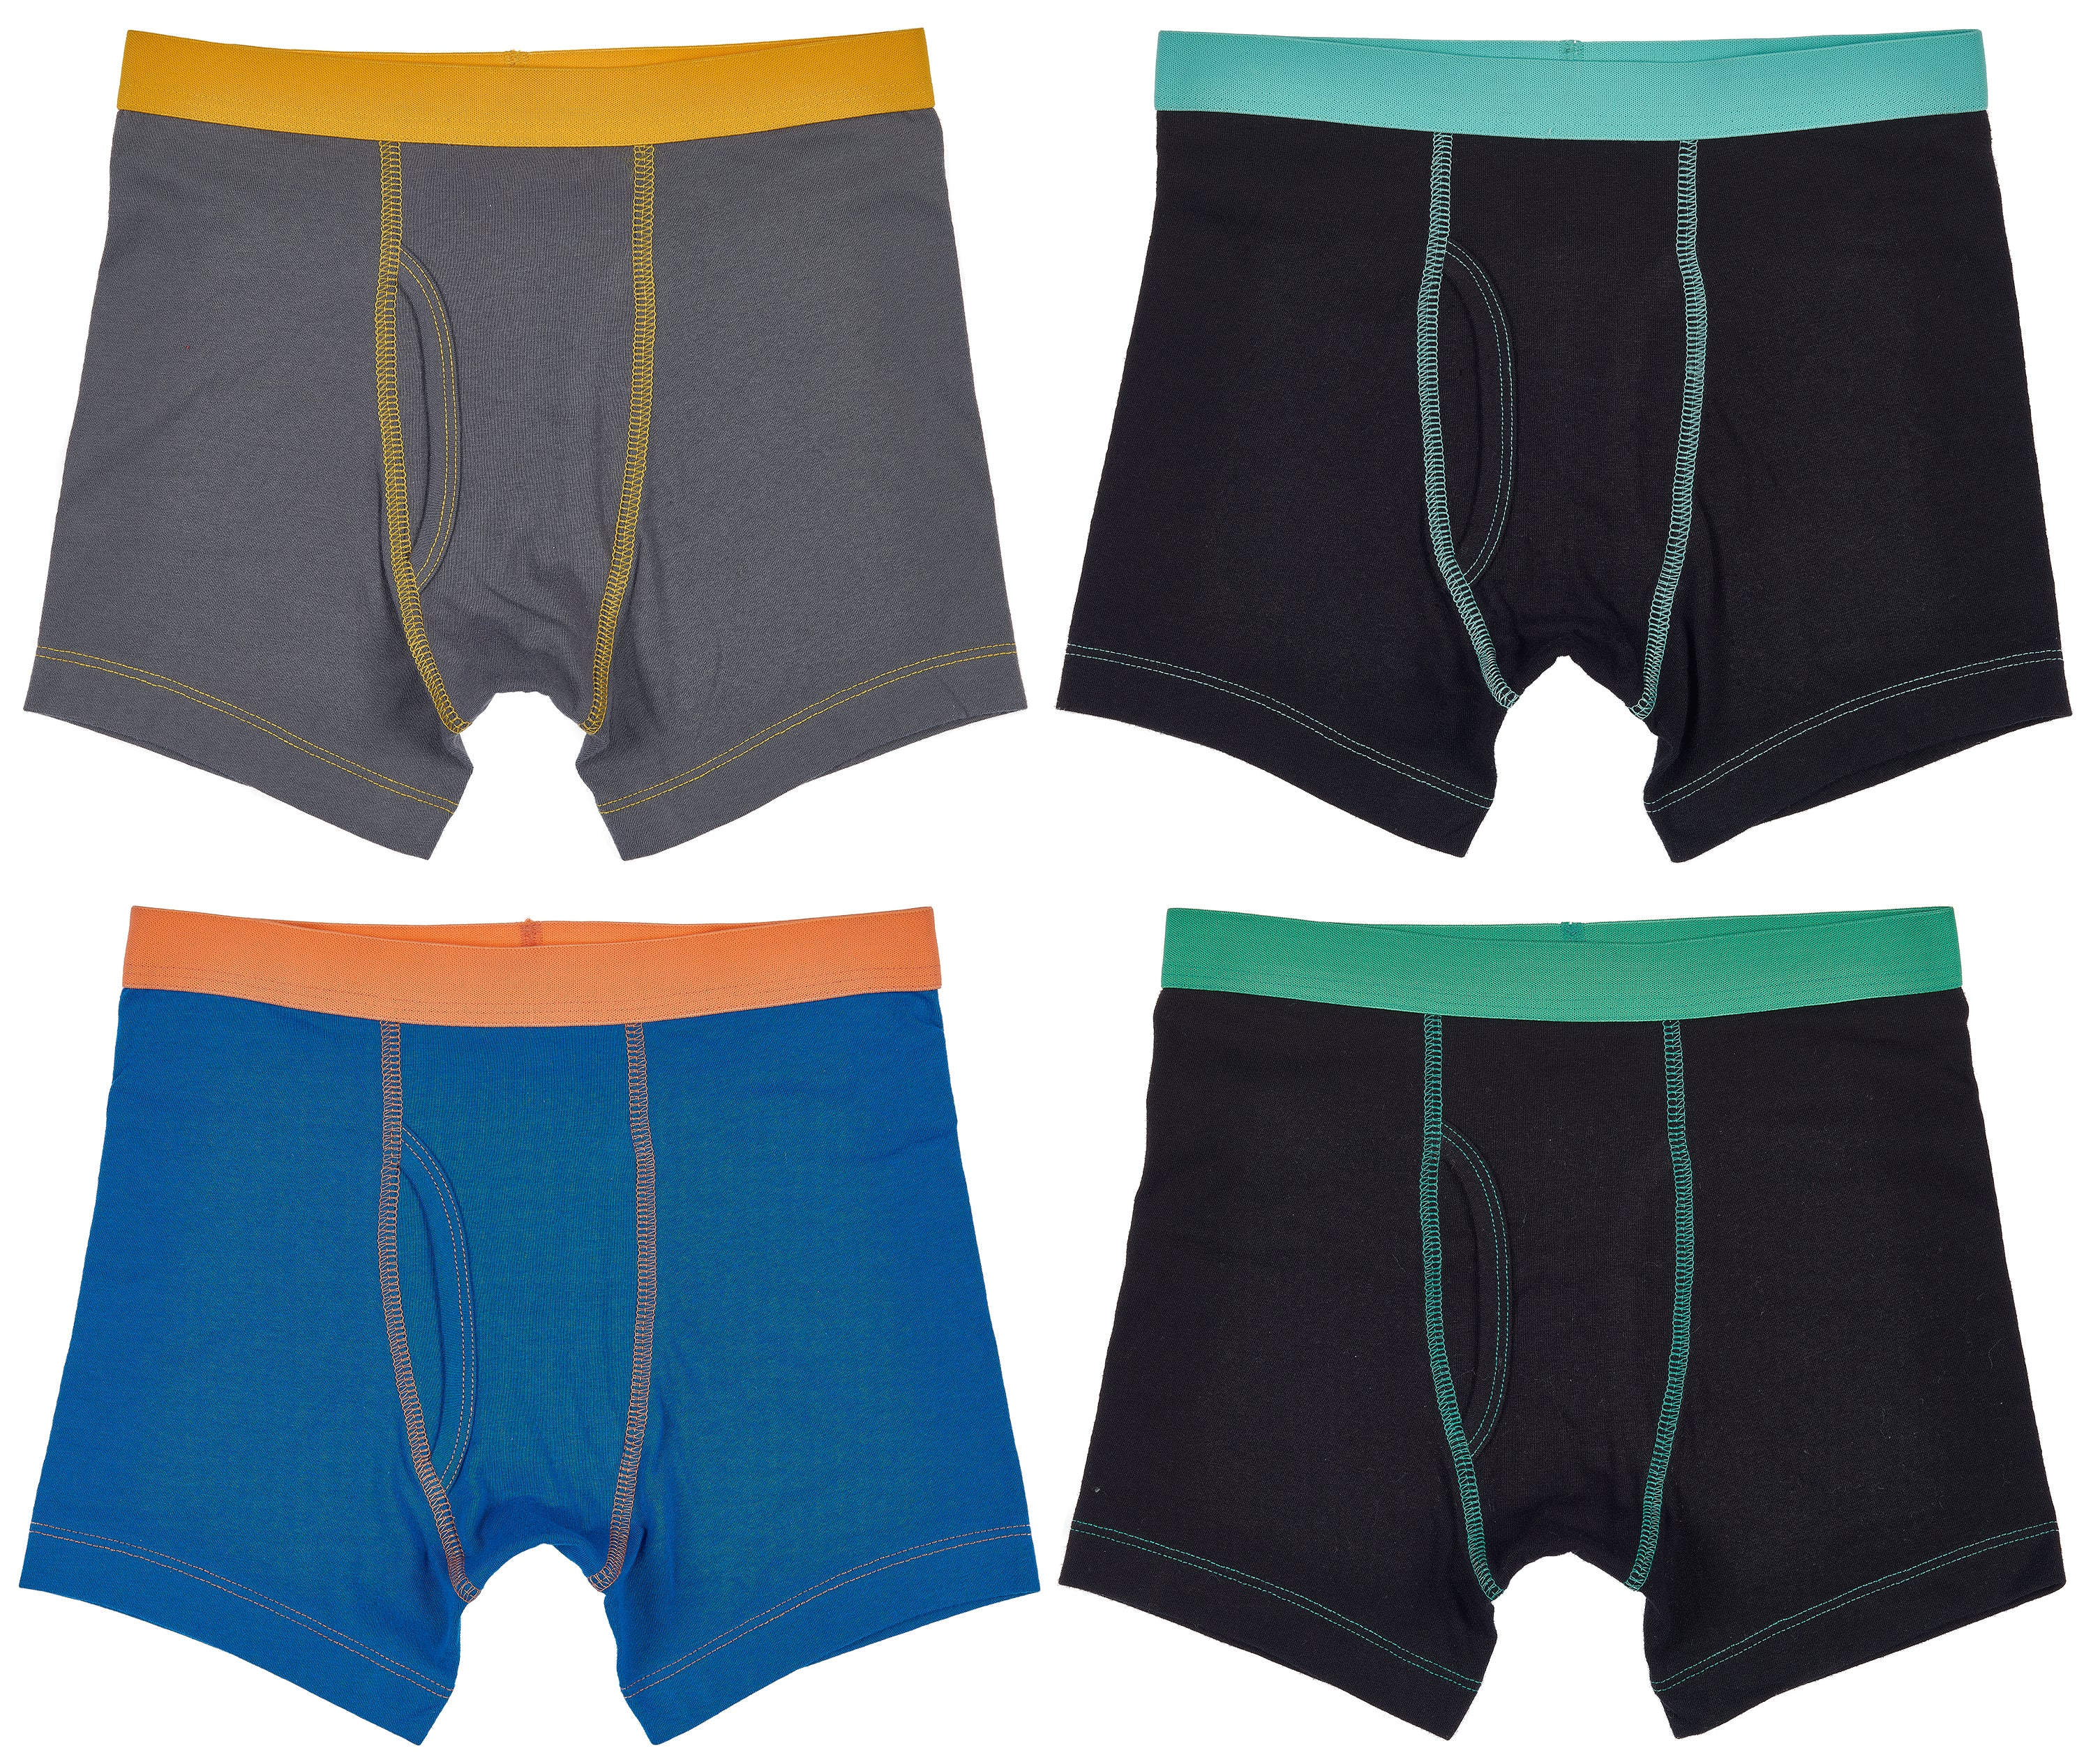 Trimfit Boys Cotton/Spandex Boxer Briefs (Pack Of 4), Multicoloured Trims